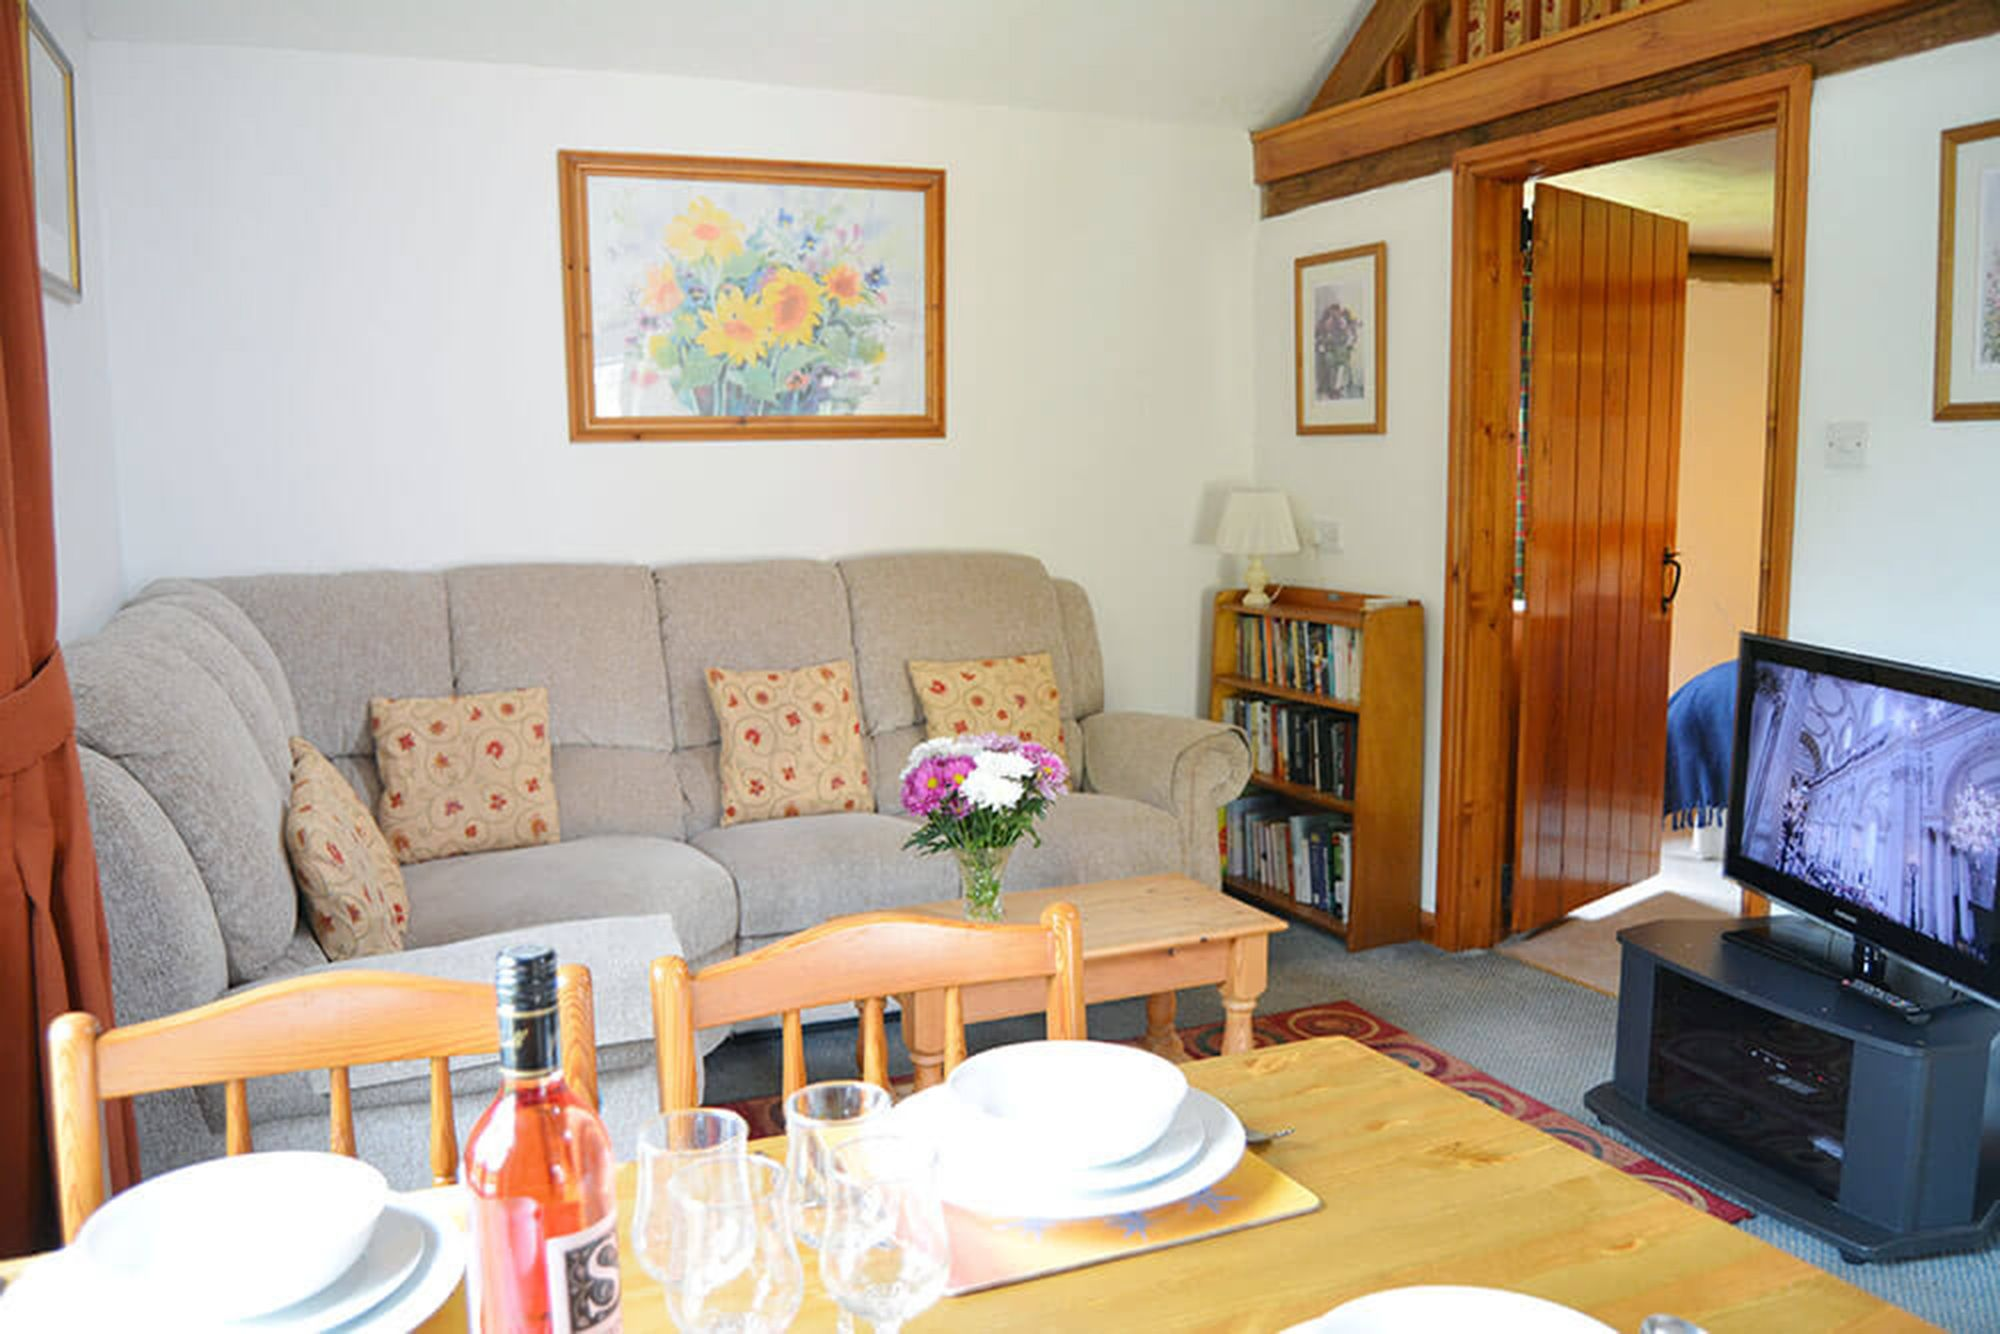 Smiddy ground floor: Spacious open plan living space comprising a sitting area with a wood burning stove, a dining area and a fitted kitchen area